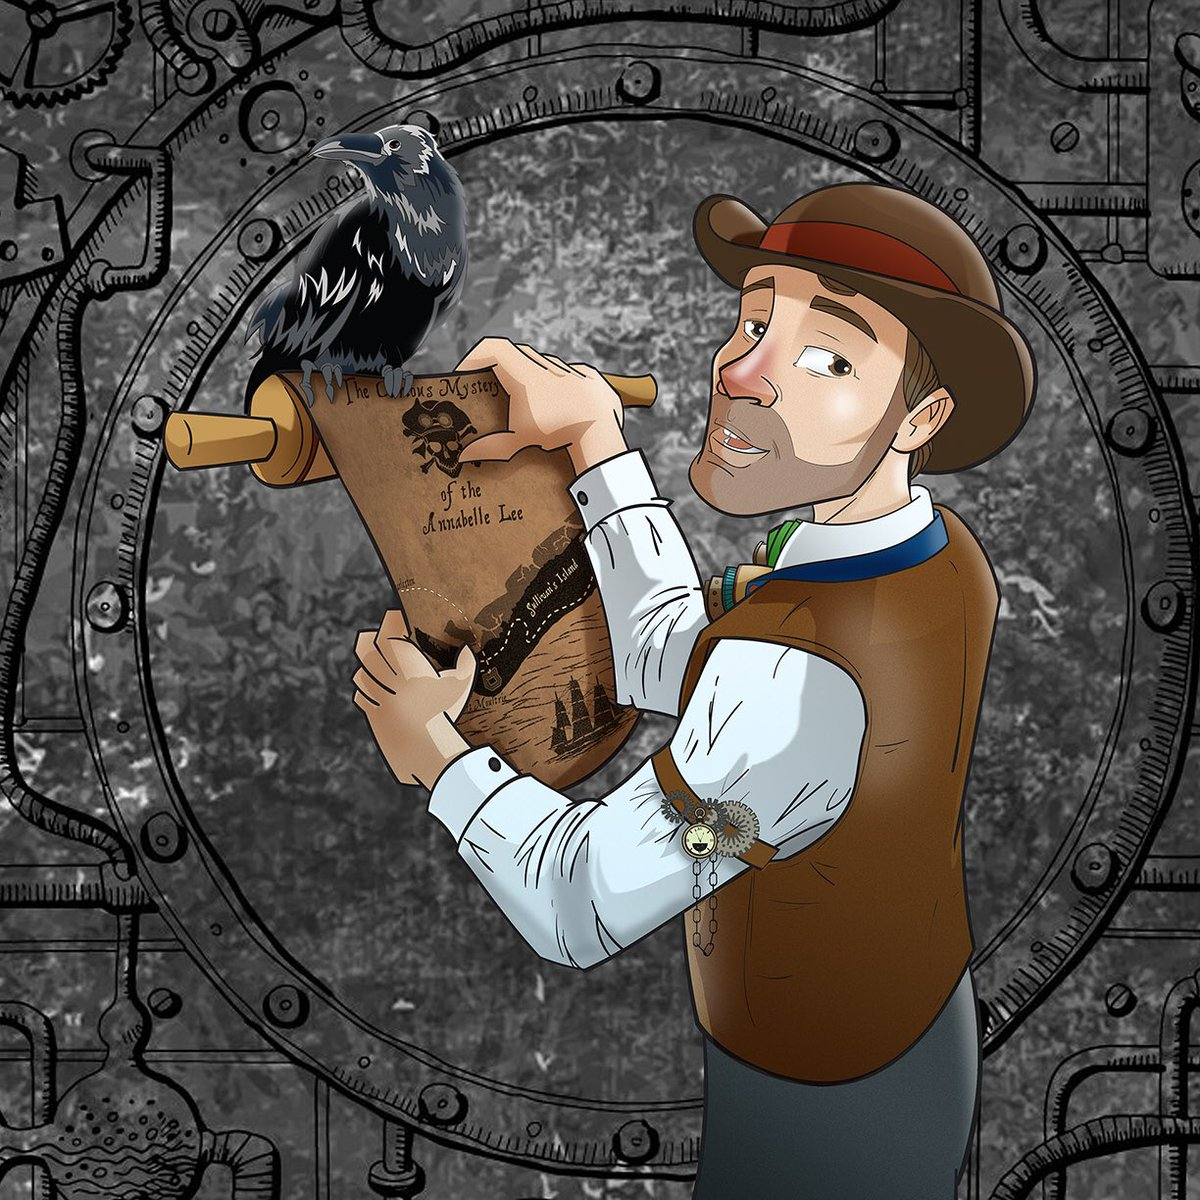 #Artwork Awesome of the Day: #Steampunk ⚙️ Commissioned #Illustration for @CarizeHunter & @Shazie44 by @Doodlebags #SamaArt